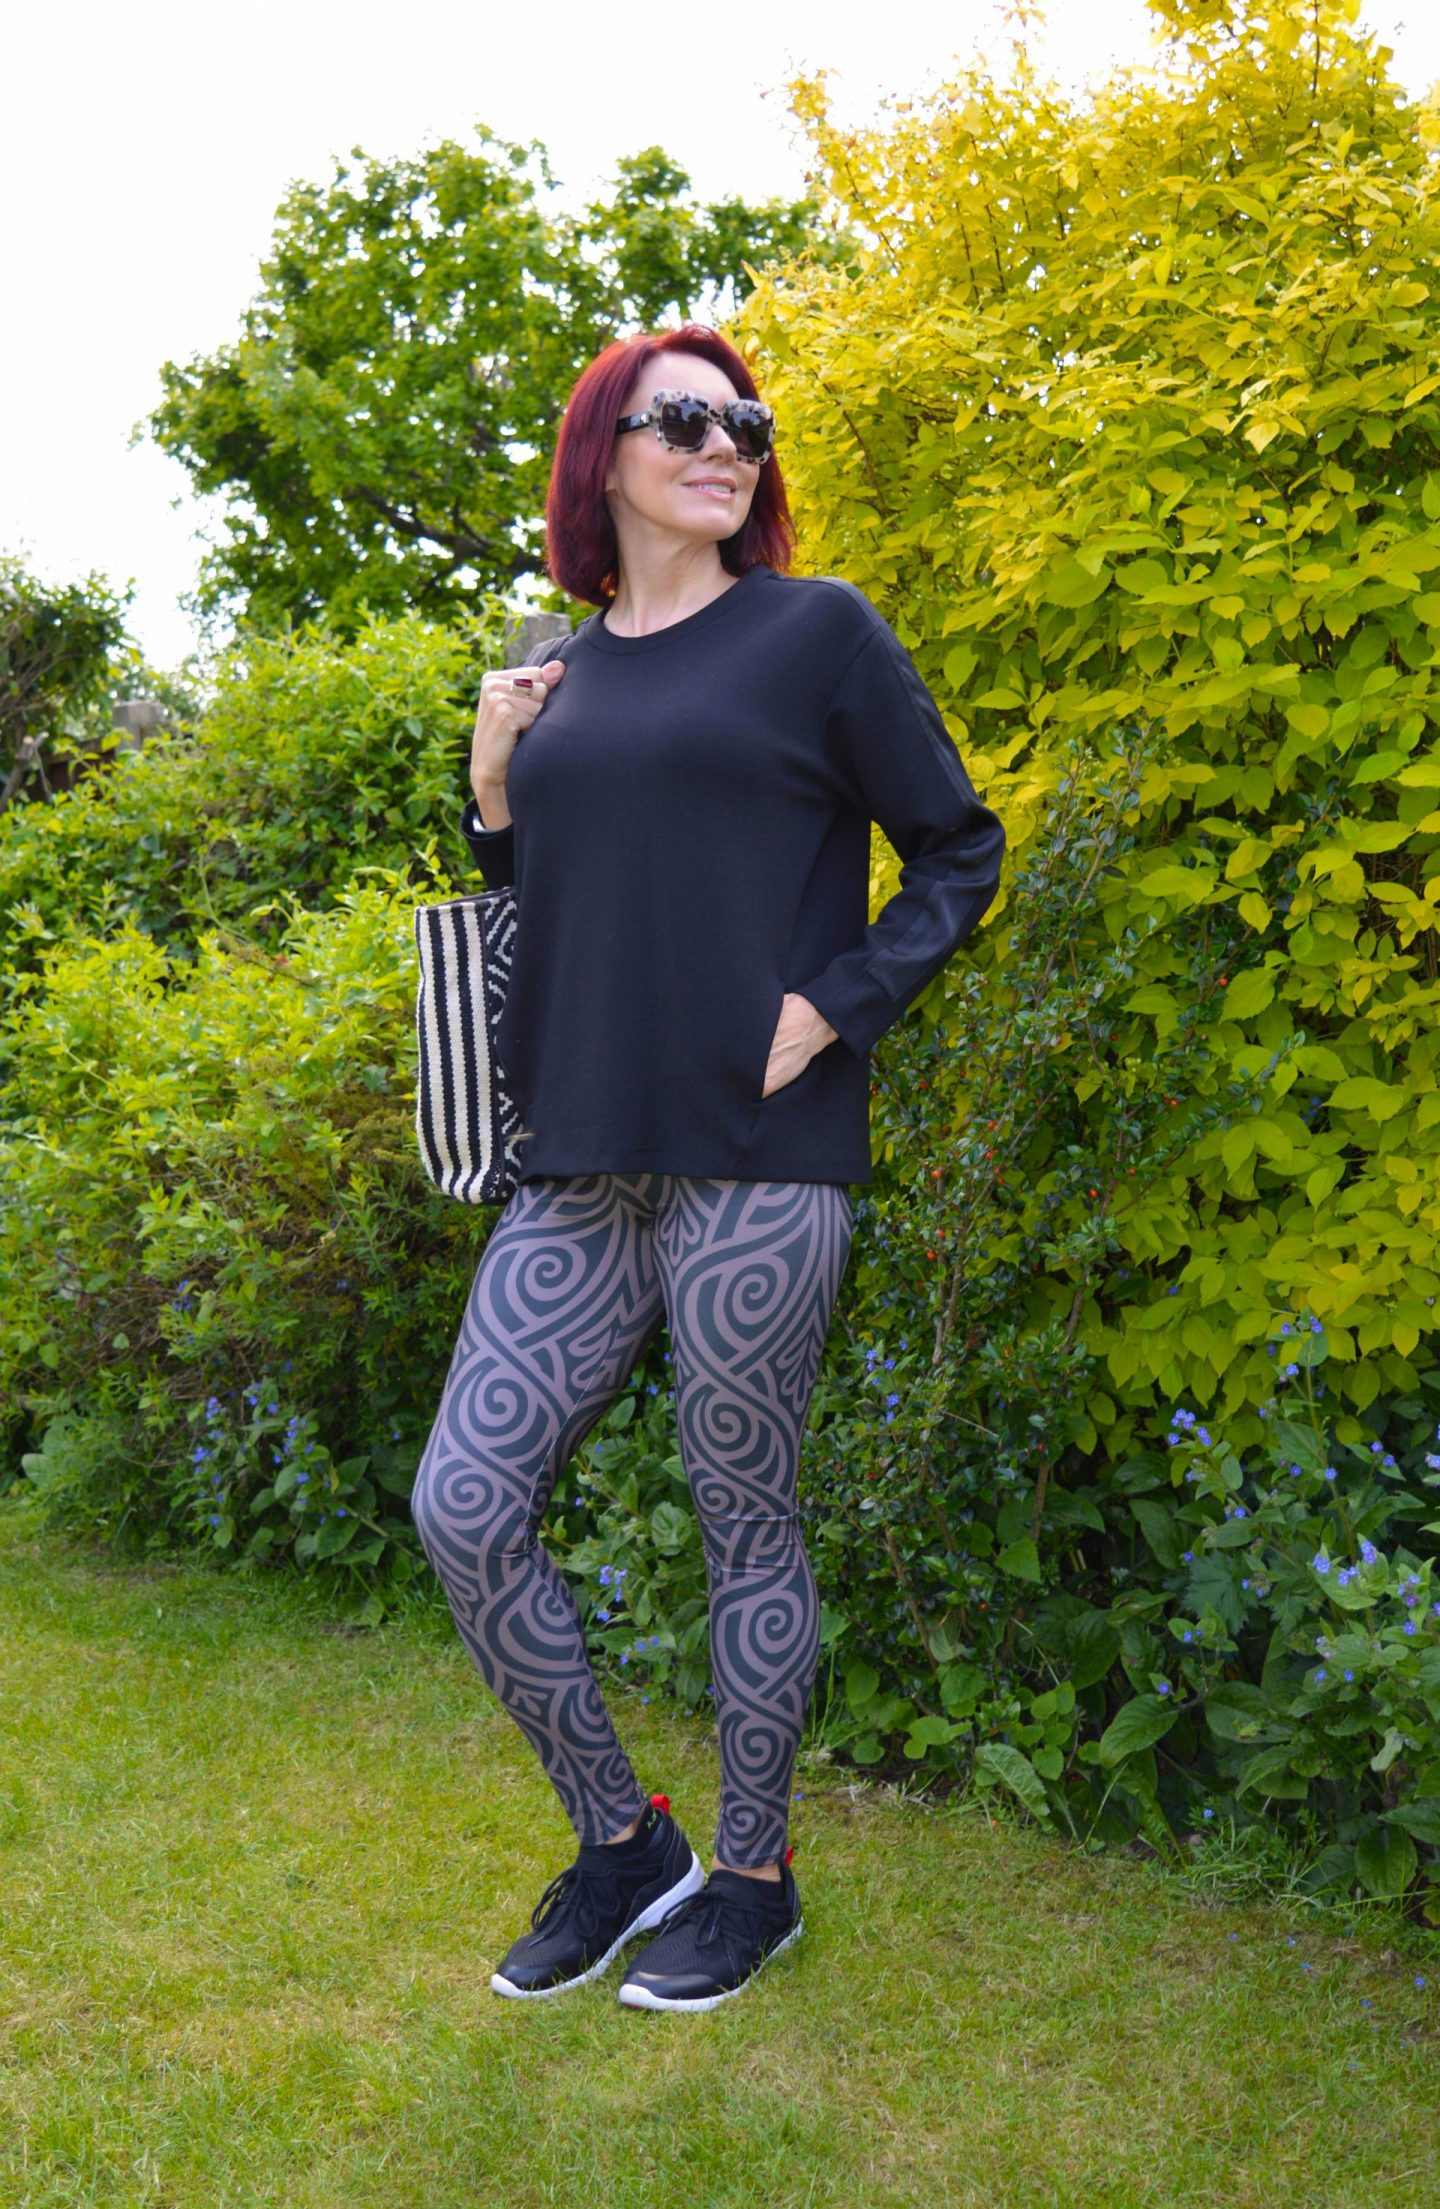 Workout leggings that are not just for the gym, Meadowlark Nouveau bands leggings, Vionic trainers